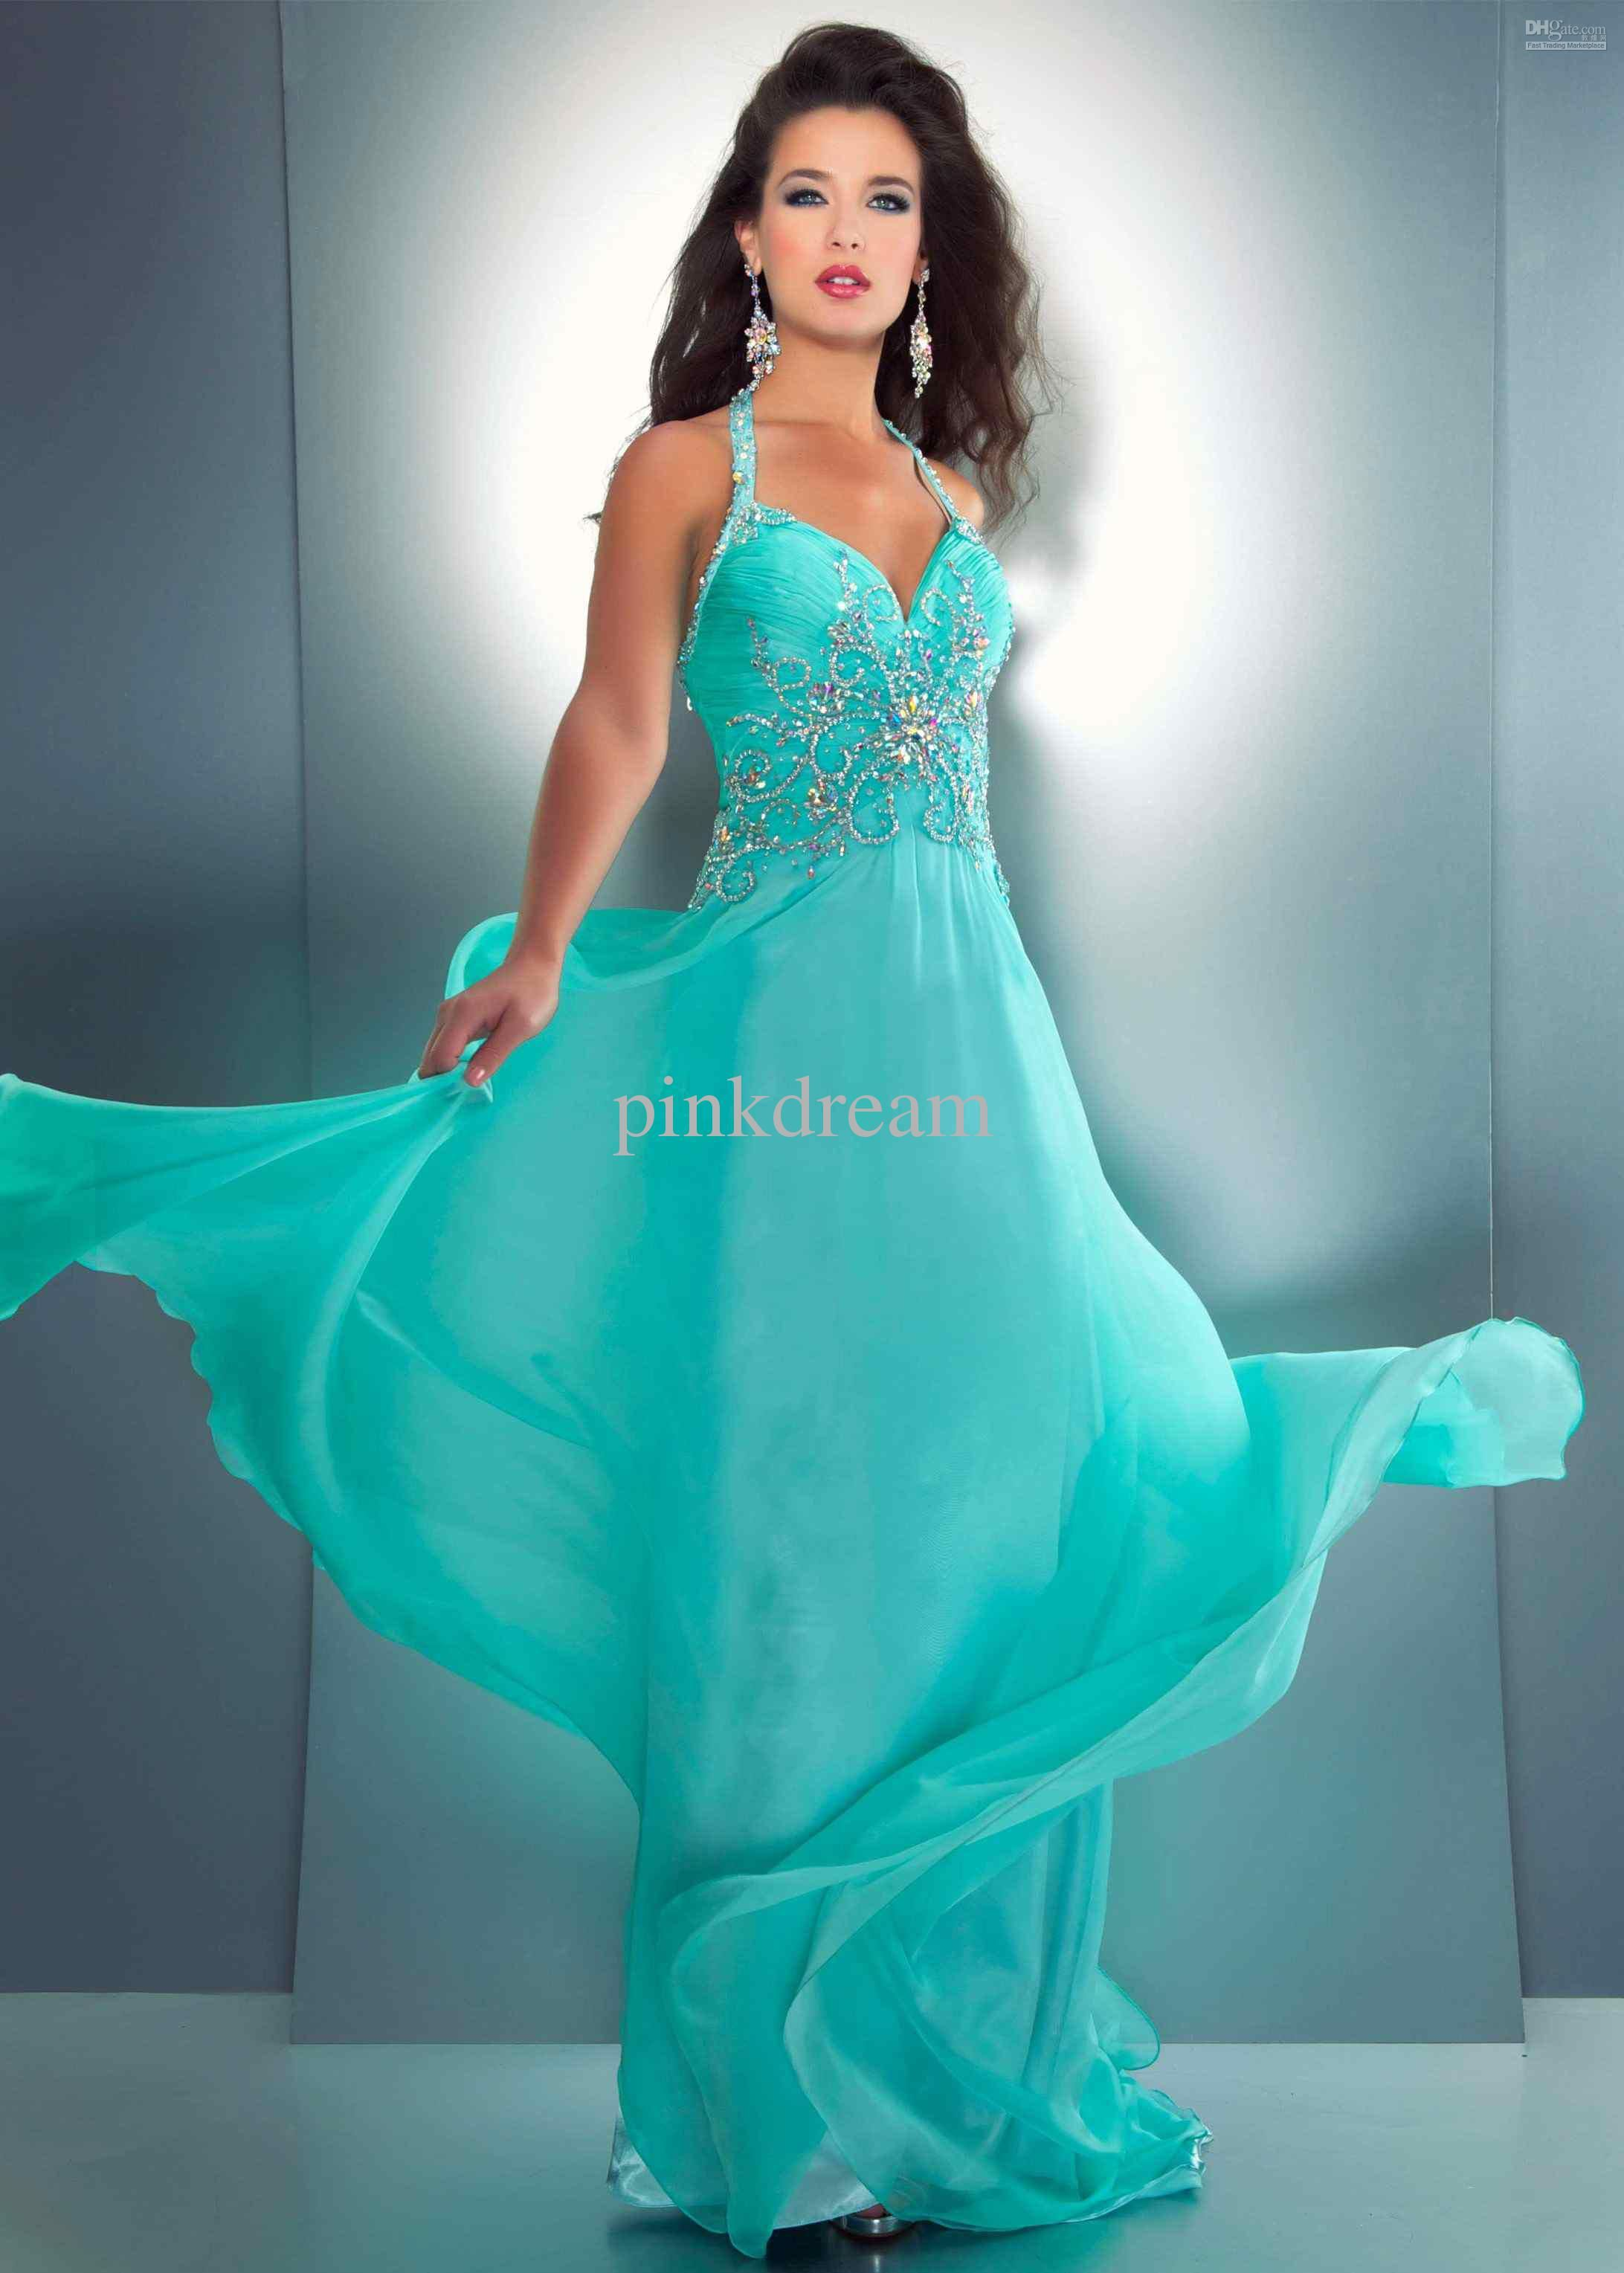 Images of Blue Dresses For Prom - Reikian